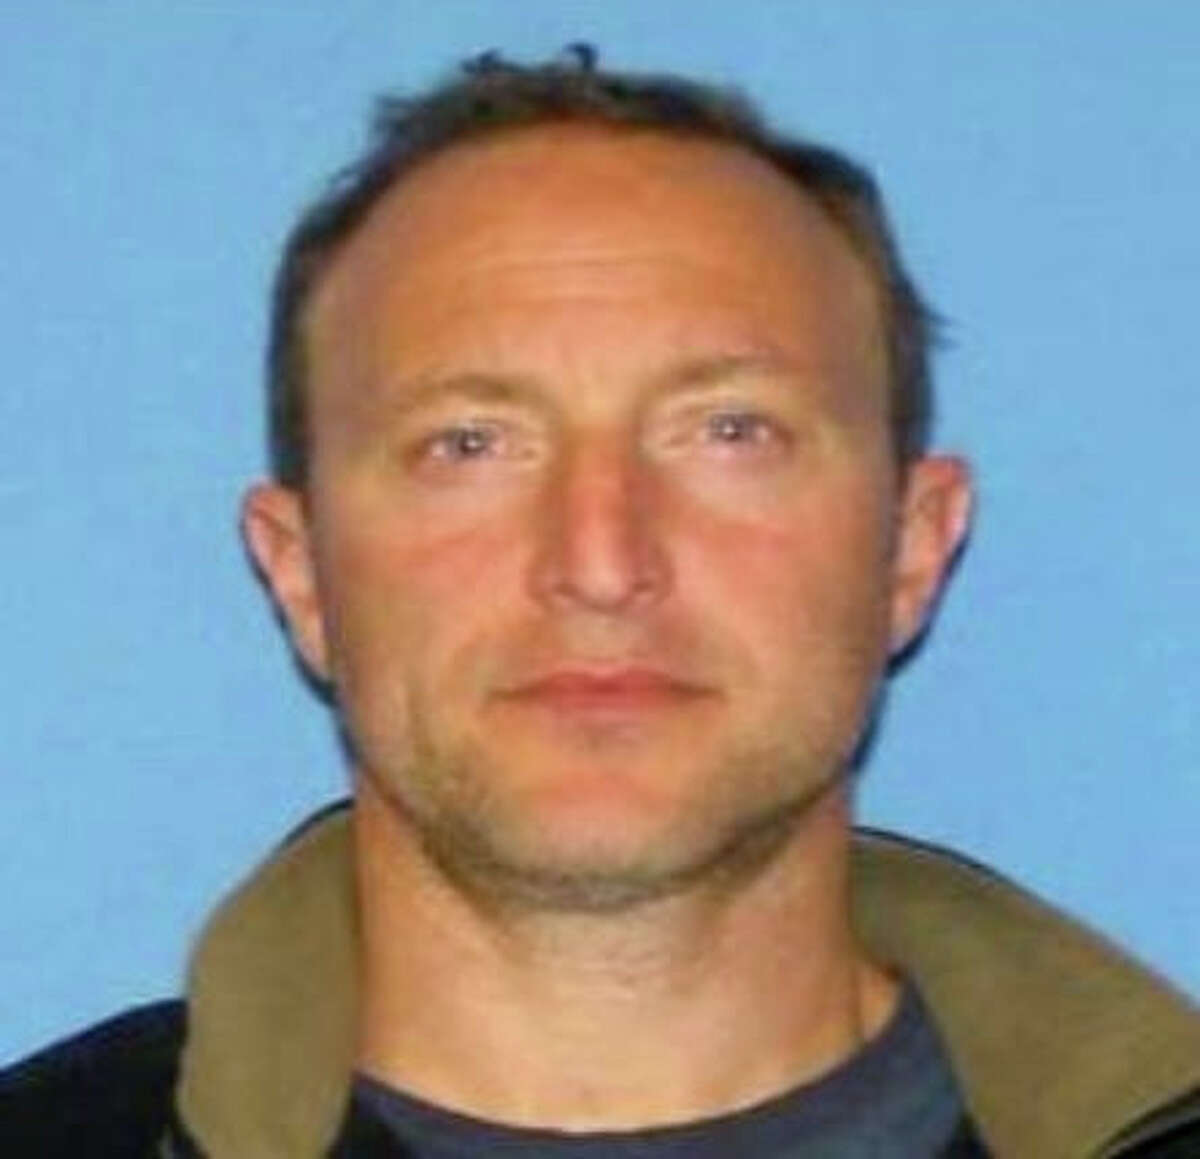 Andrew Robert Levene, also known as ìRobert Thomas,î 41, was arrested on Monday Jan. 23, 2012 in Spain on federal murder, robbery and firearm charges in connection with the killing of Yekutiel Zeevi, a Westport jewelry manufacturer inside his store last month.